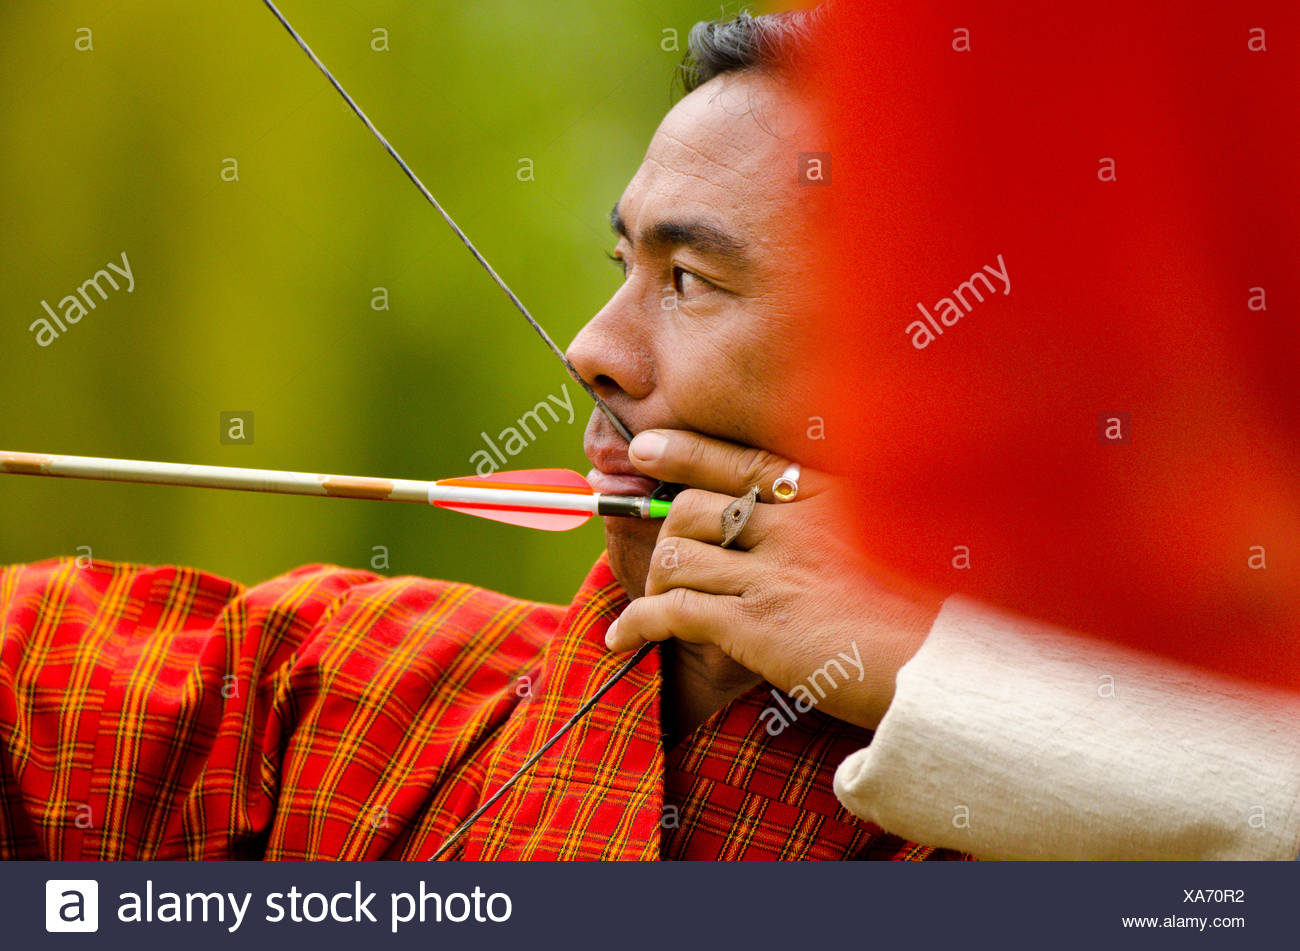 A Buddhist man takes aim with a bow and arrow in Bhutan, where the national sport is archery - Stock Image